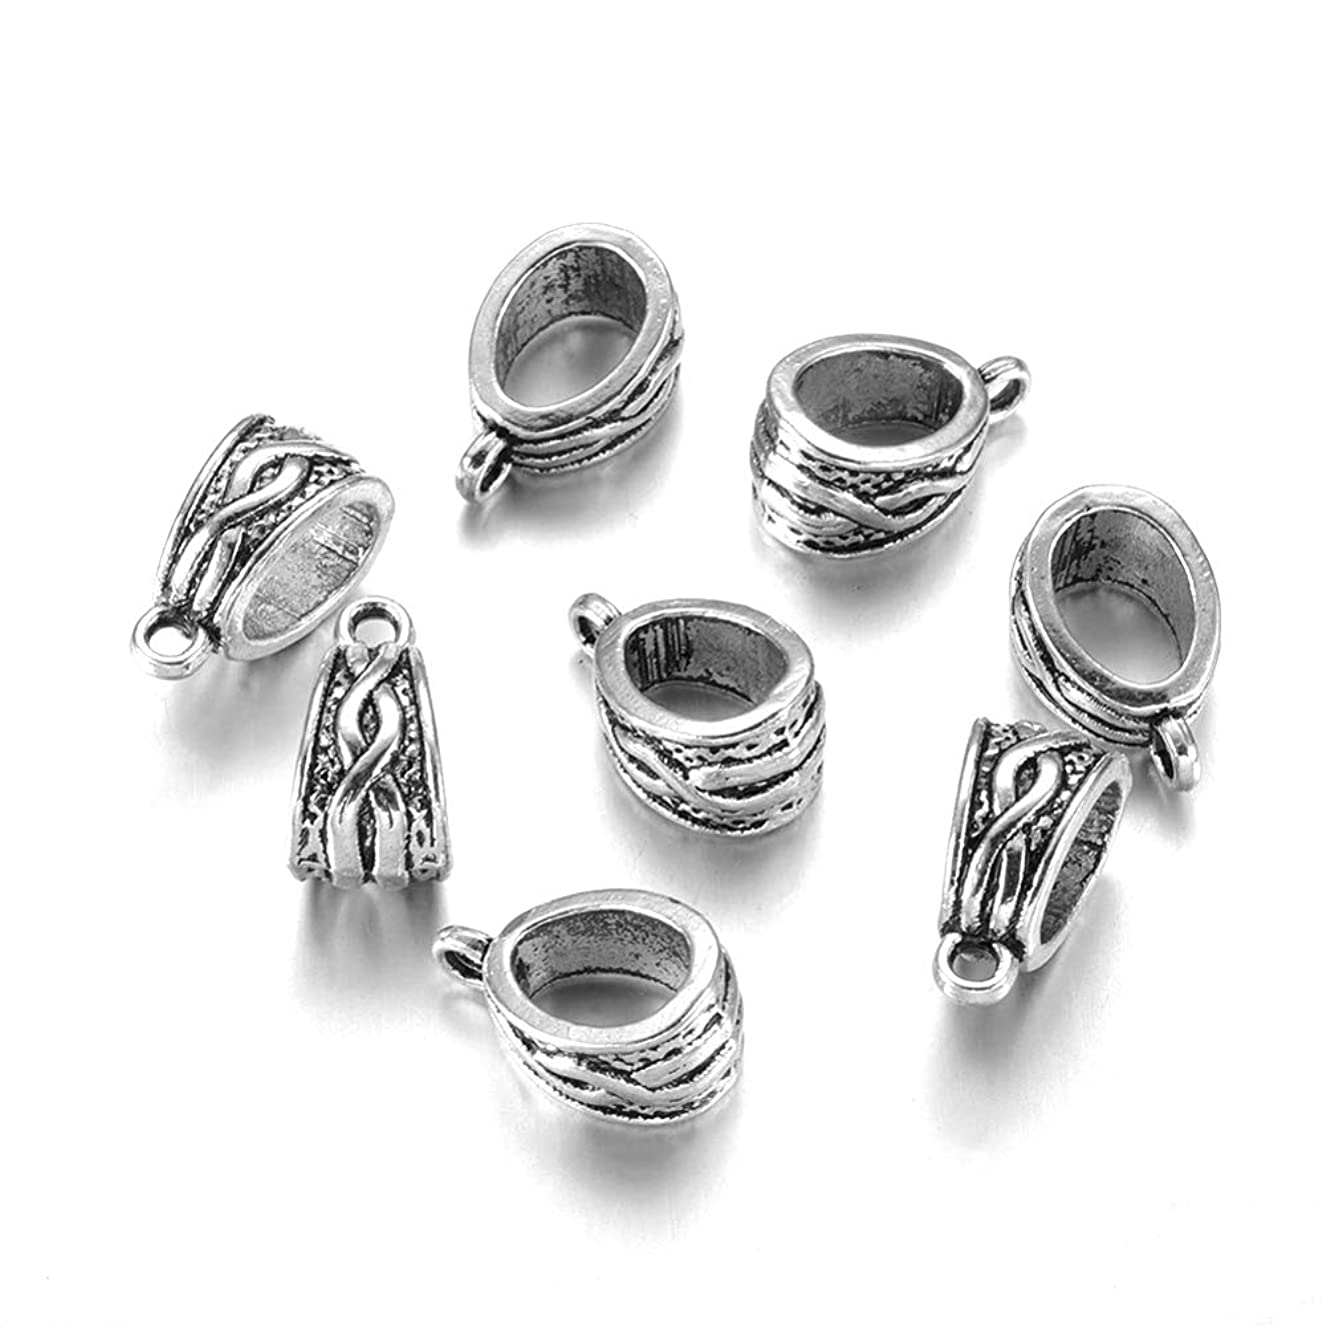 Craftdady 20Pcs Tibetan Antique Silver Hanger Bail Beads Lead Free & Cadmium Free for Charm Pendant Making 14x7.5mm